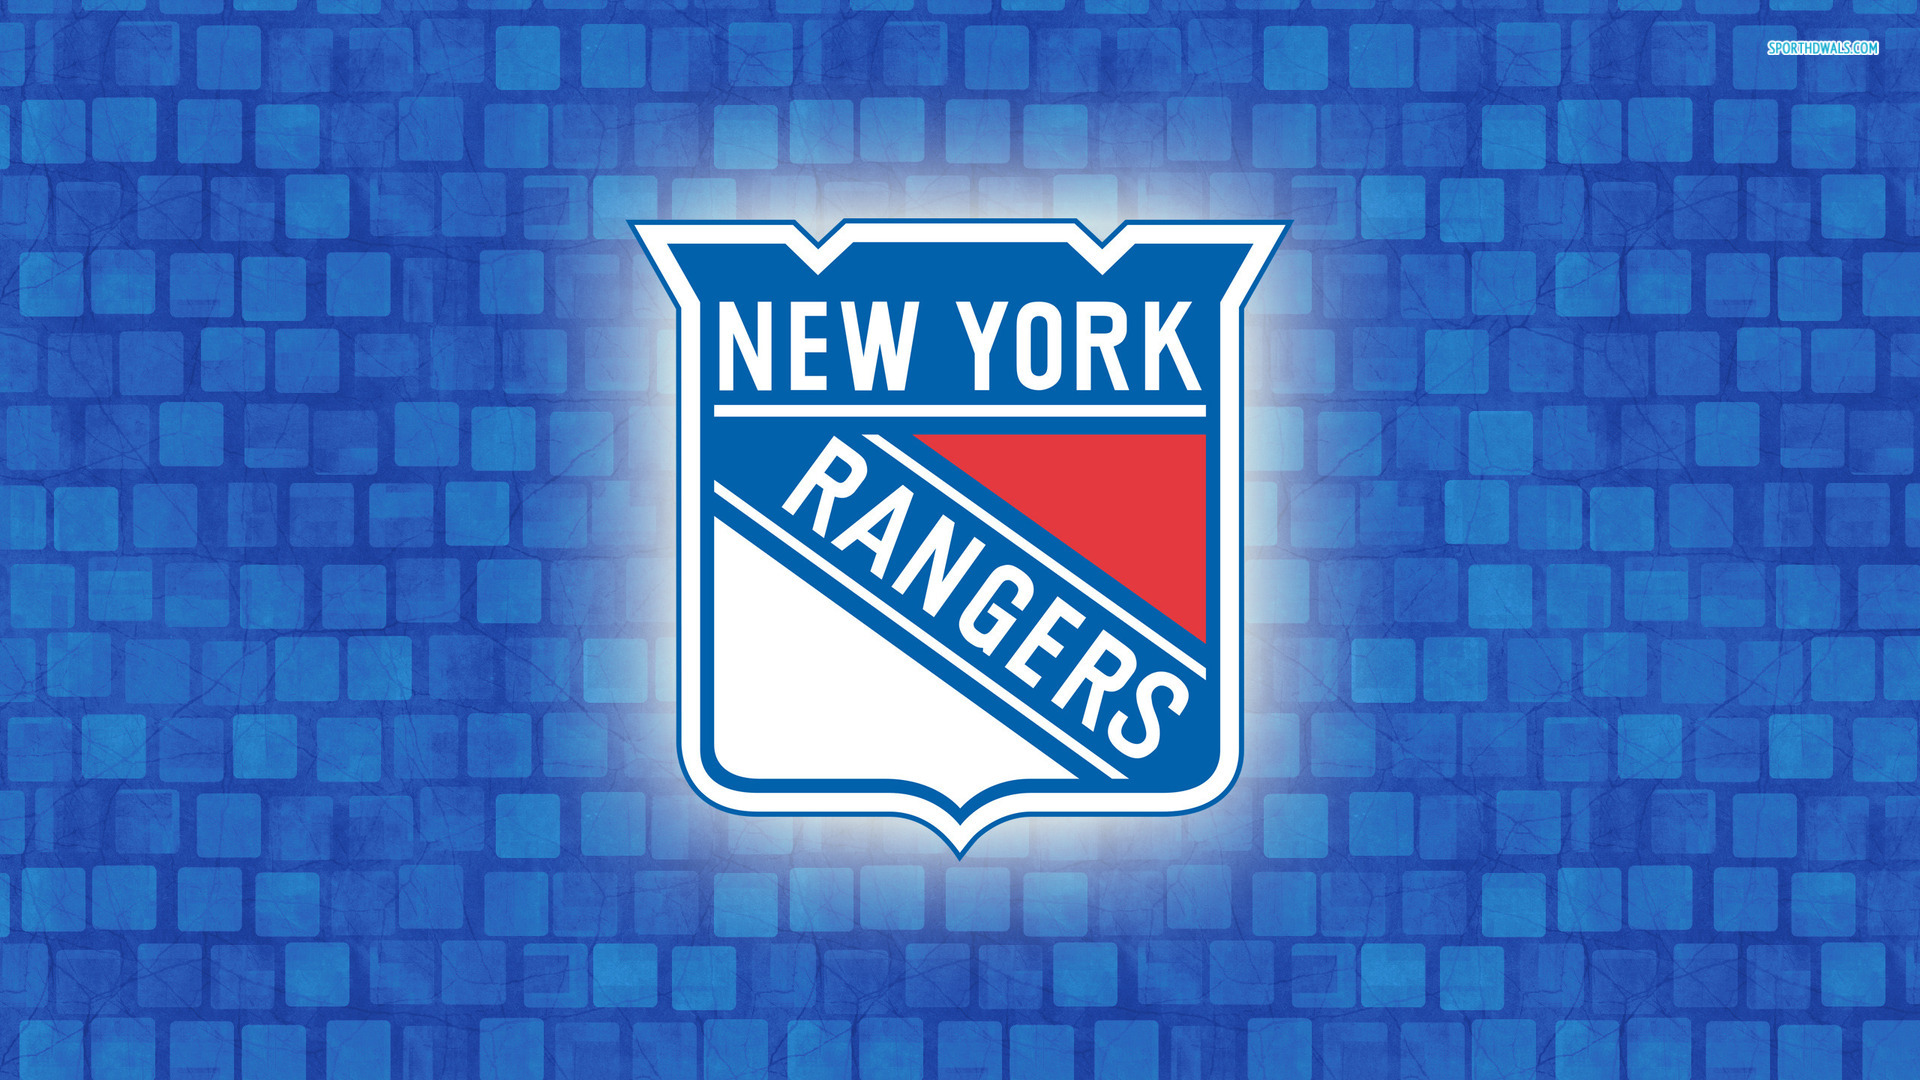 New York Rangers wallpaper 1920x1080